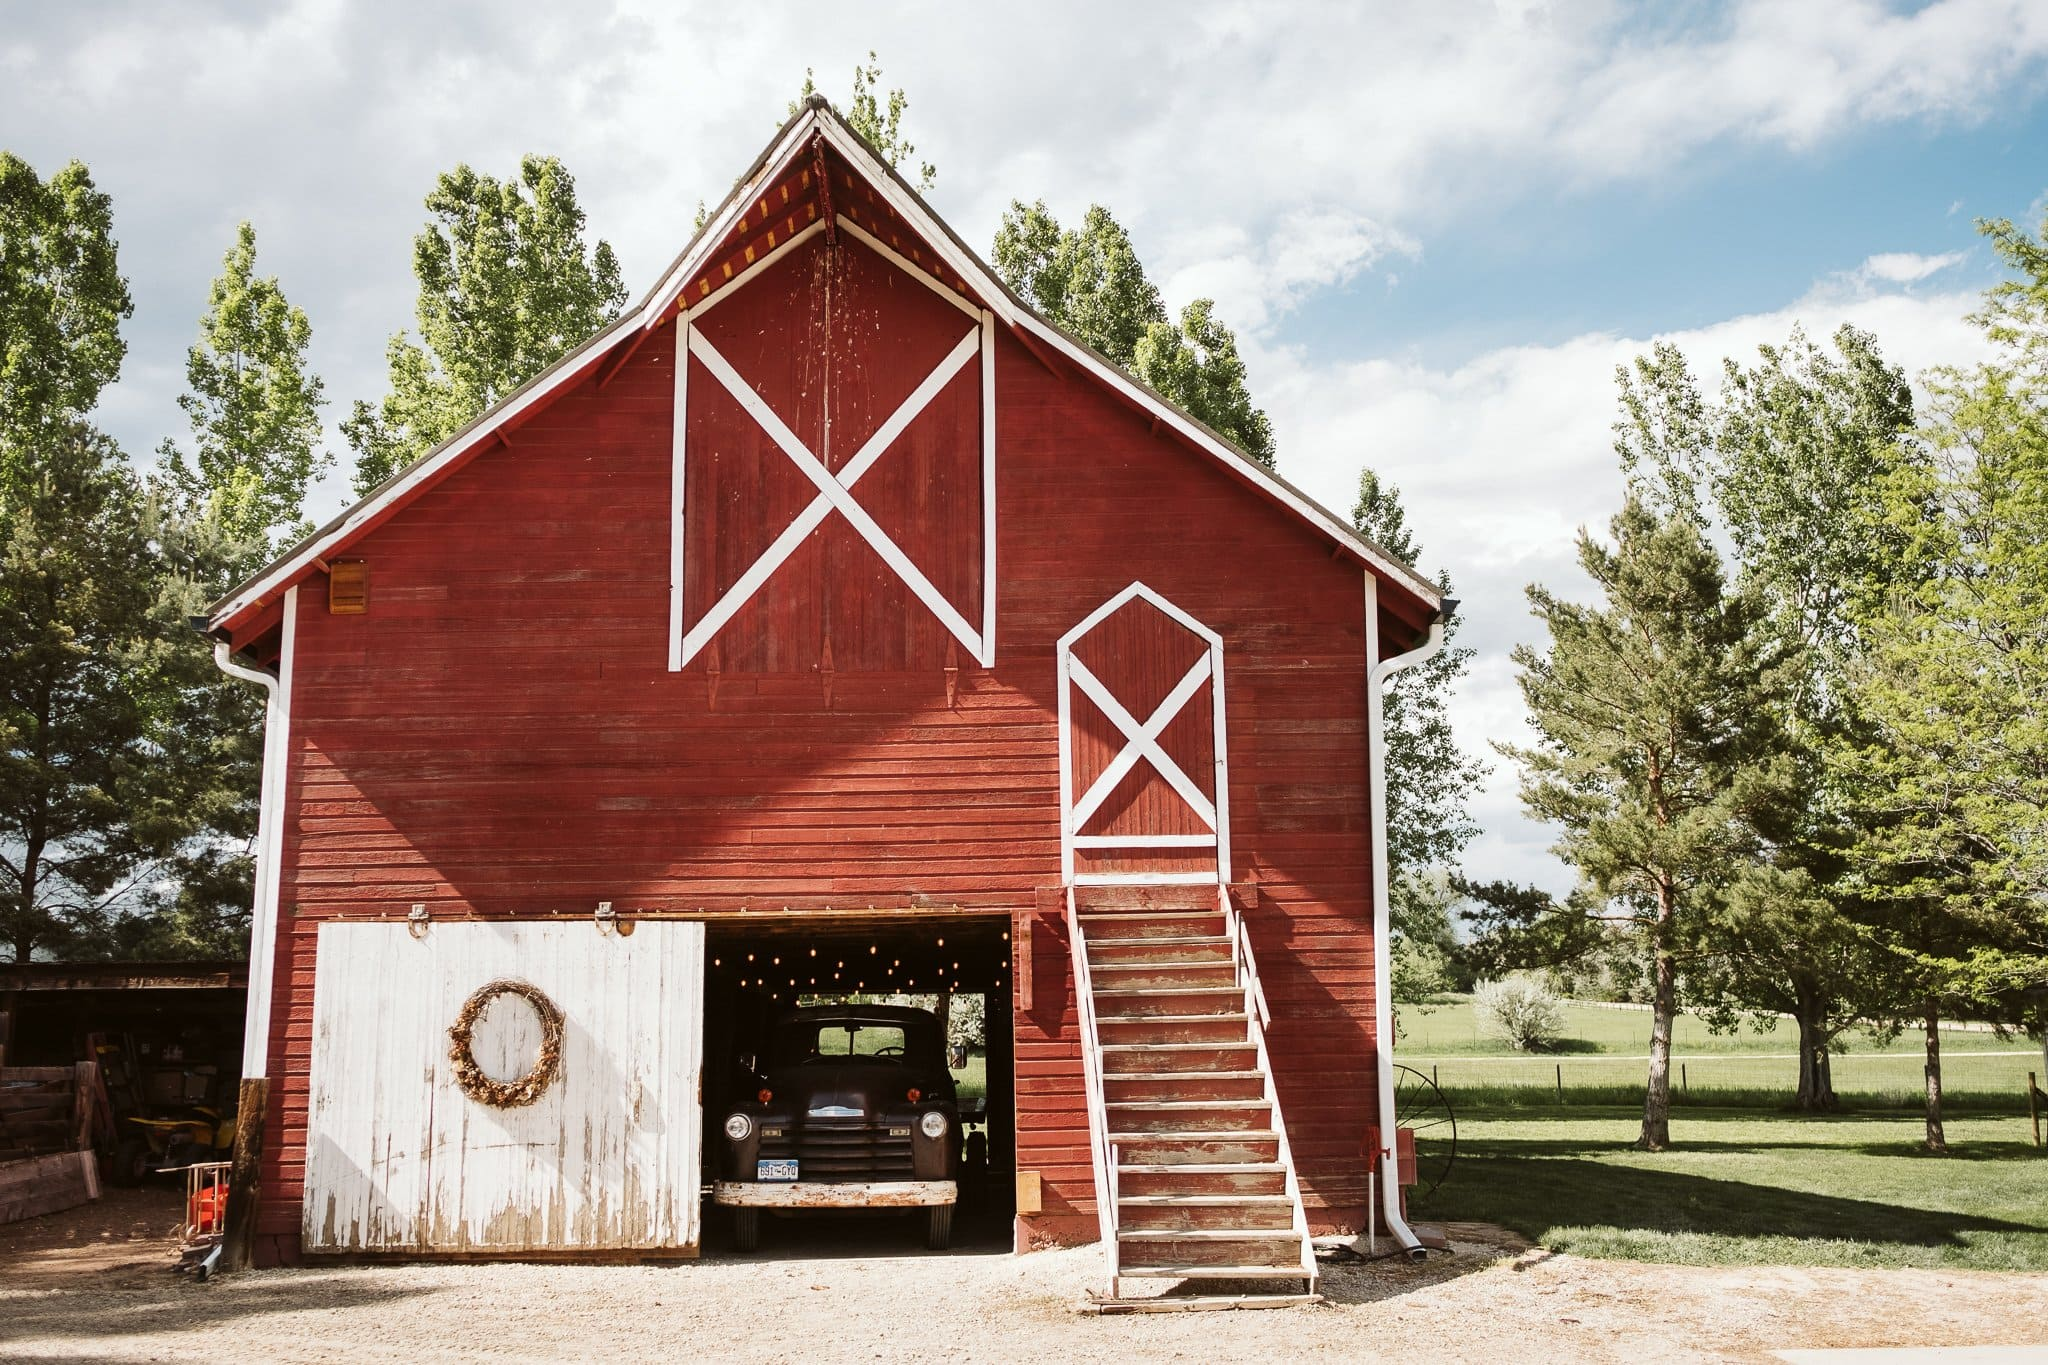 milston-well-farm-wedding-venue-boulder-25